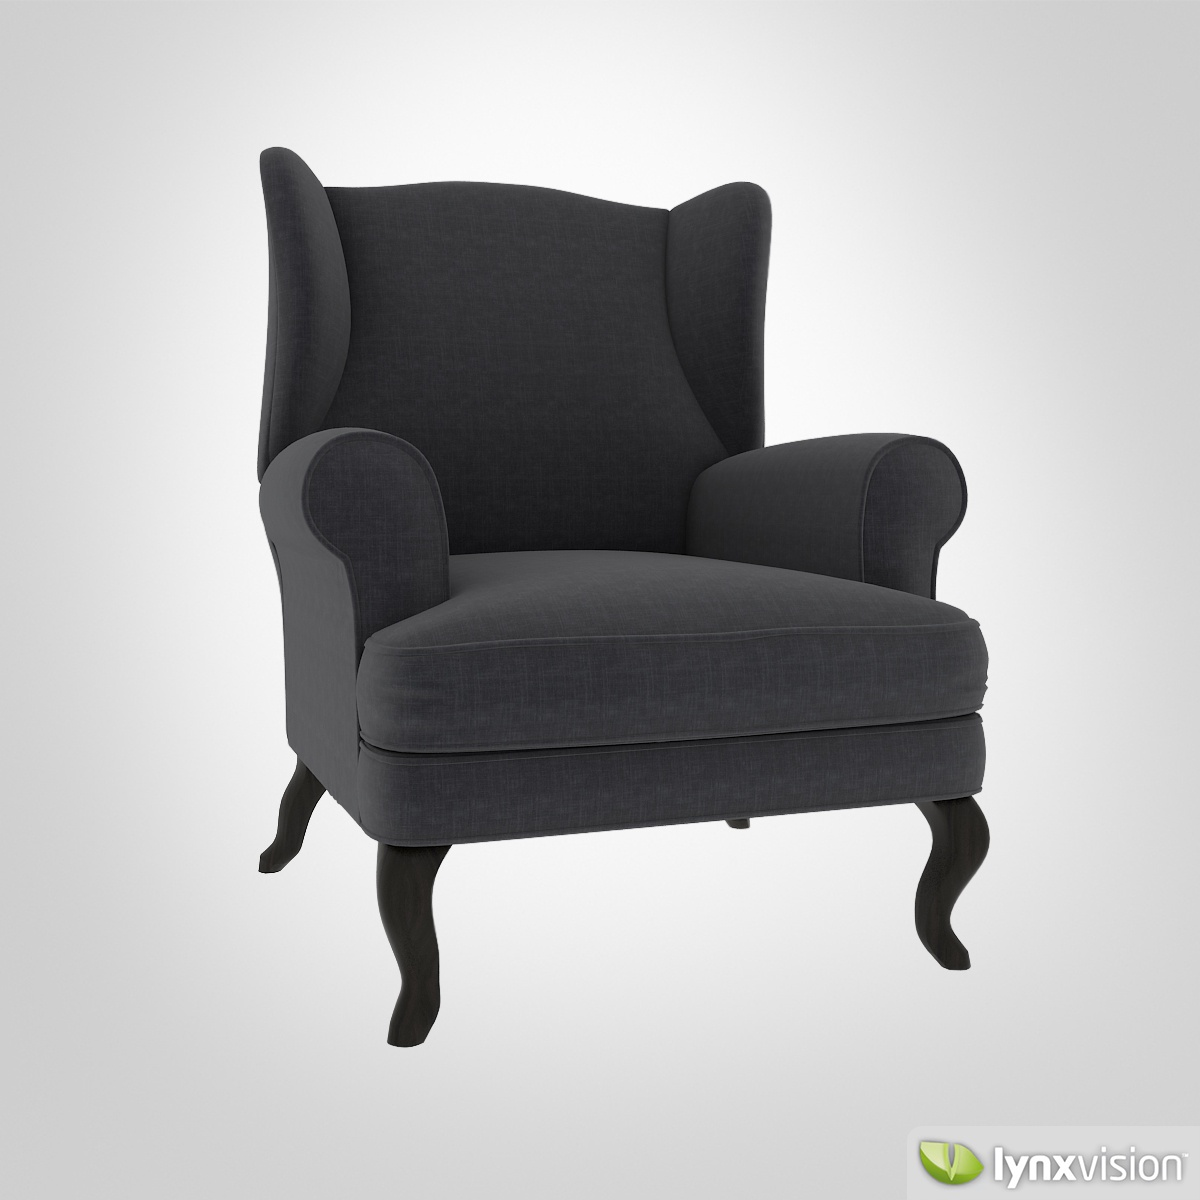 Free Upholstered Armchair free 3D Model MAX OBJ FBX  : freeupholsteredarmchair3dmodelfbxobjmax261befbd 7fee 46ca 9300 2e952acf6ef4 from www.cgtrader.com size 1200 x 1200 jpeg 169kB